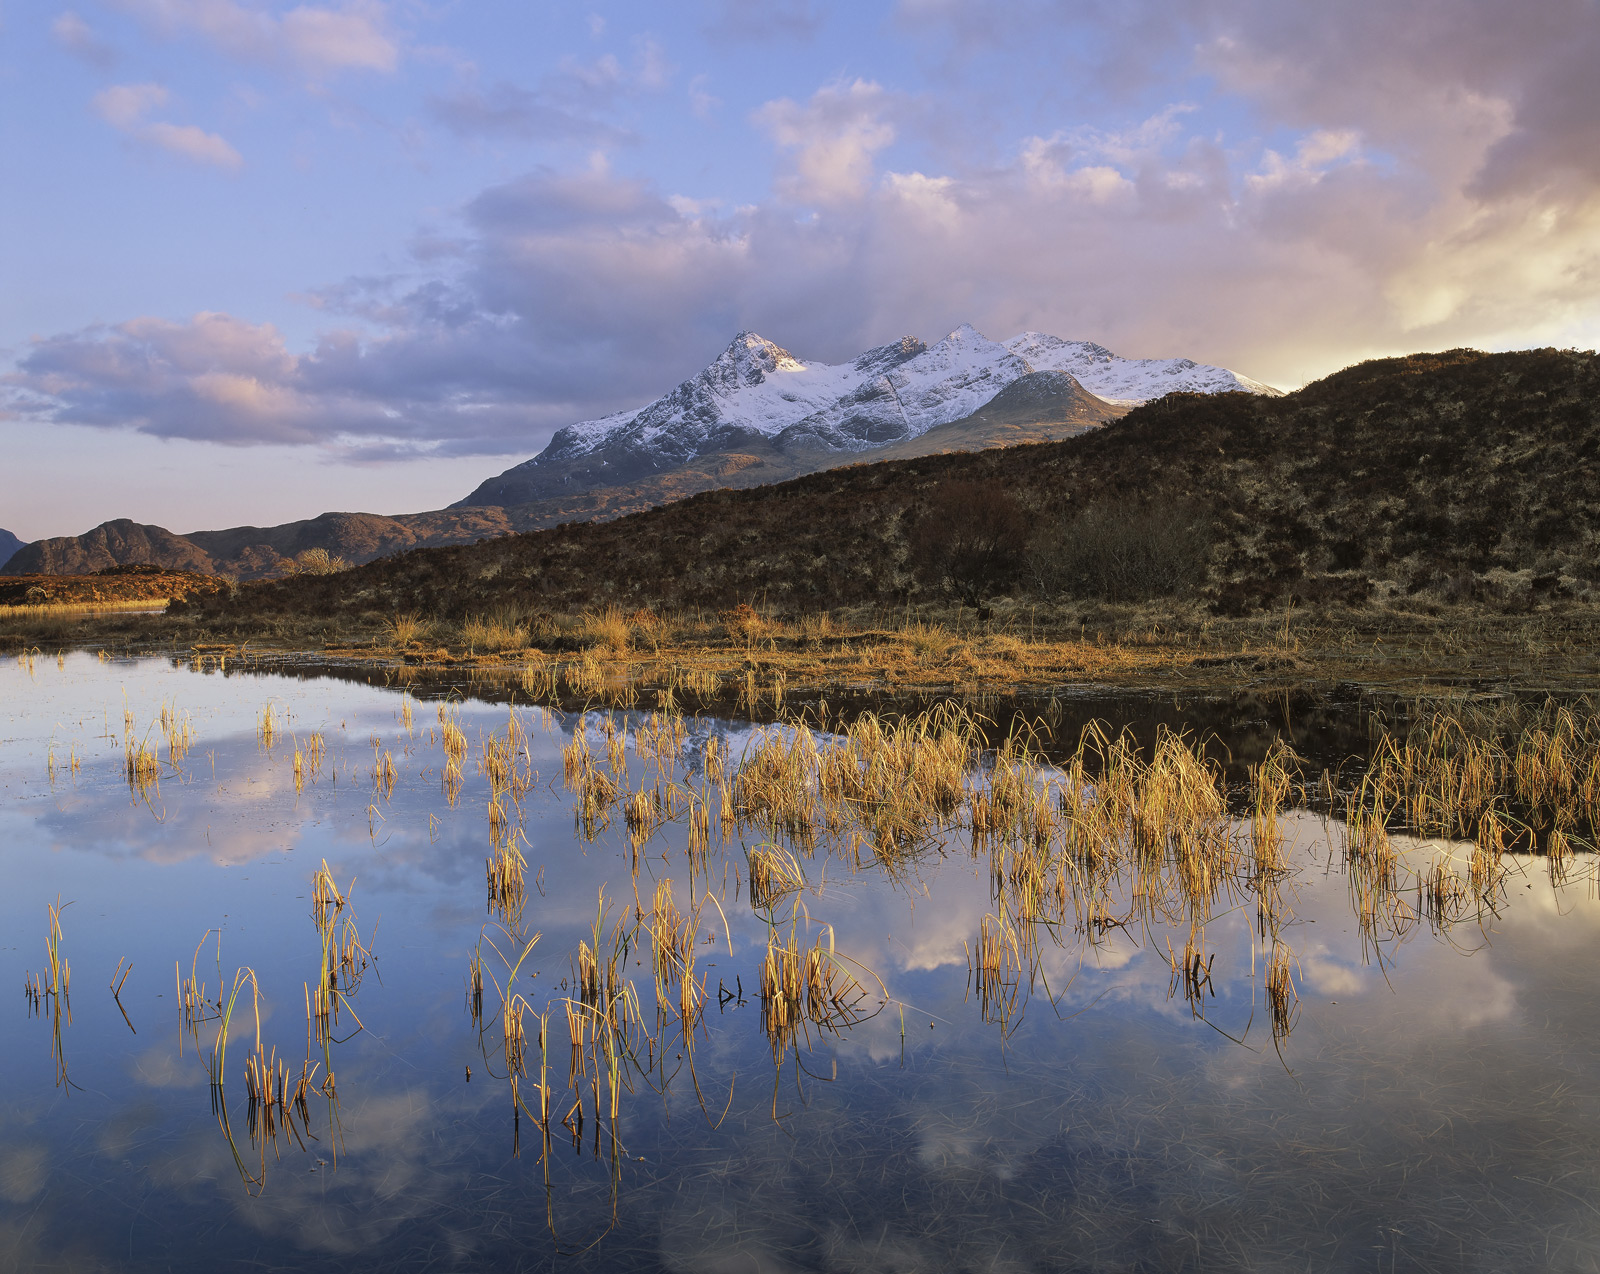 The snow dusted peak of Sgurr Nan Gillean gleams in the late evening sunlight on an Autumnal day. For a brief instant the...